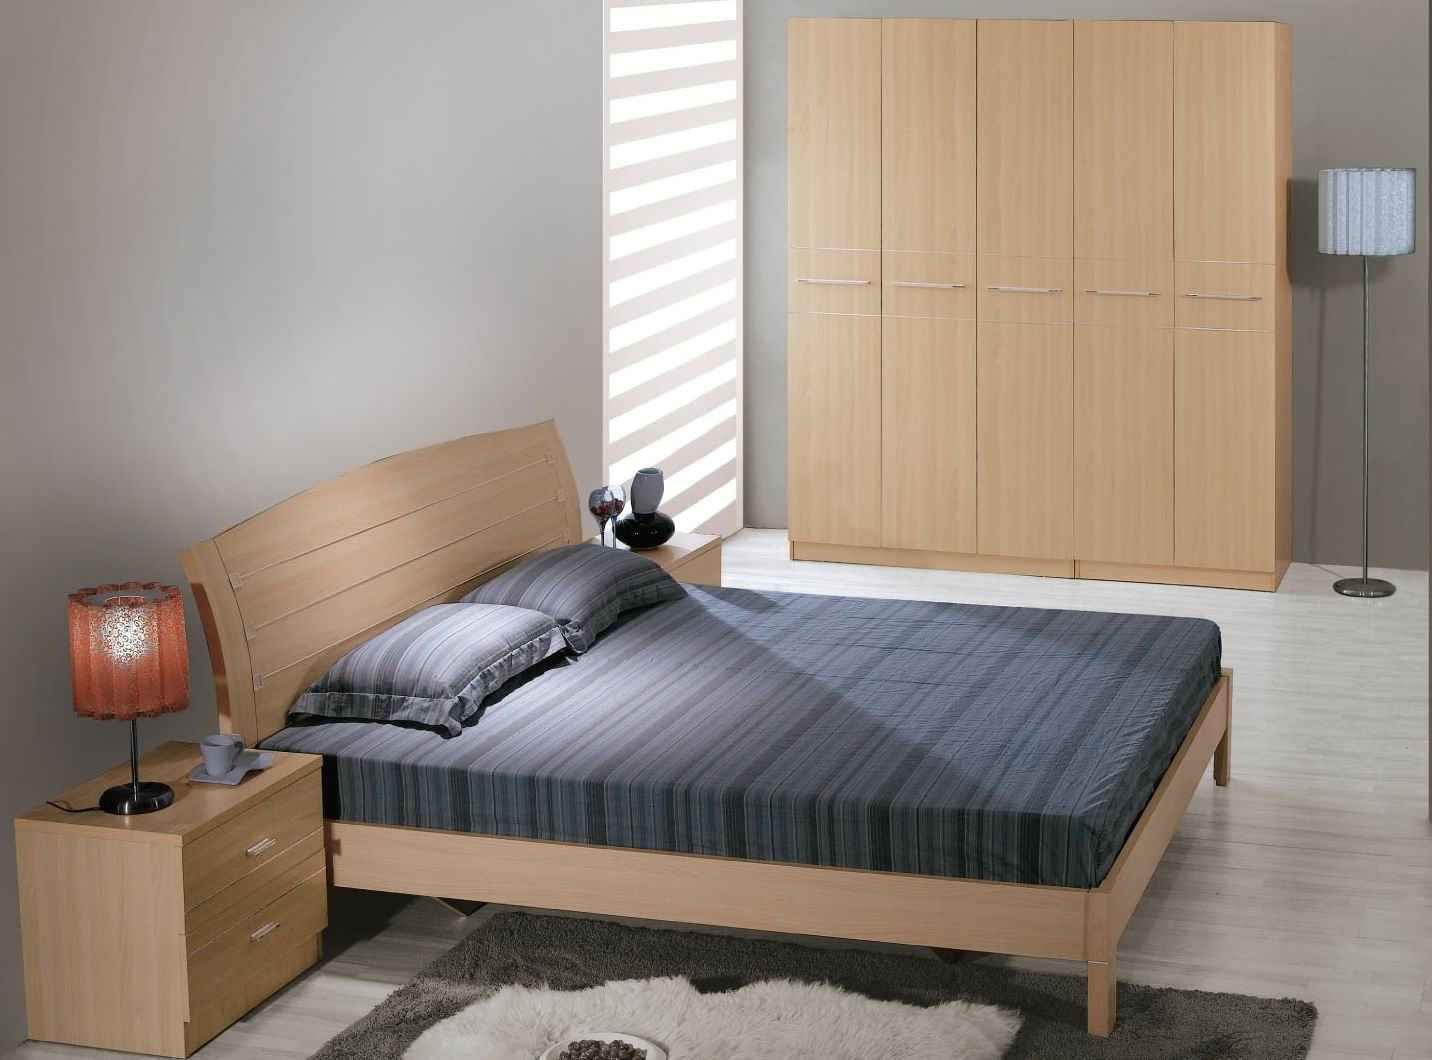 Affordable MDF Apartment Bedroom Furnitures